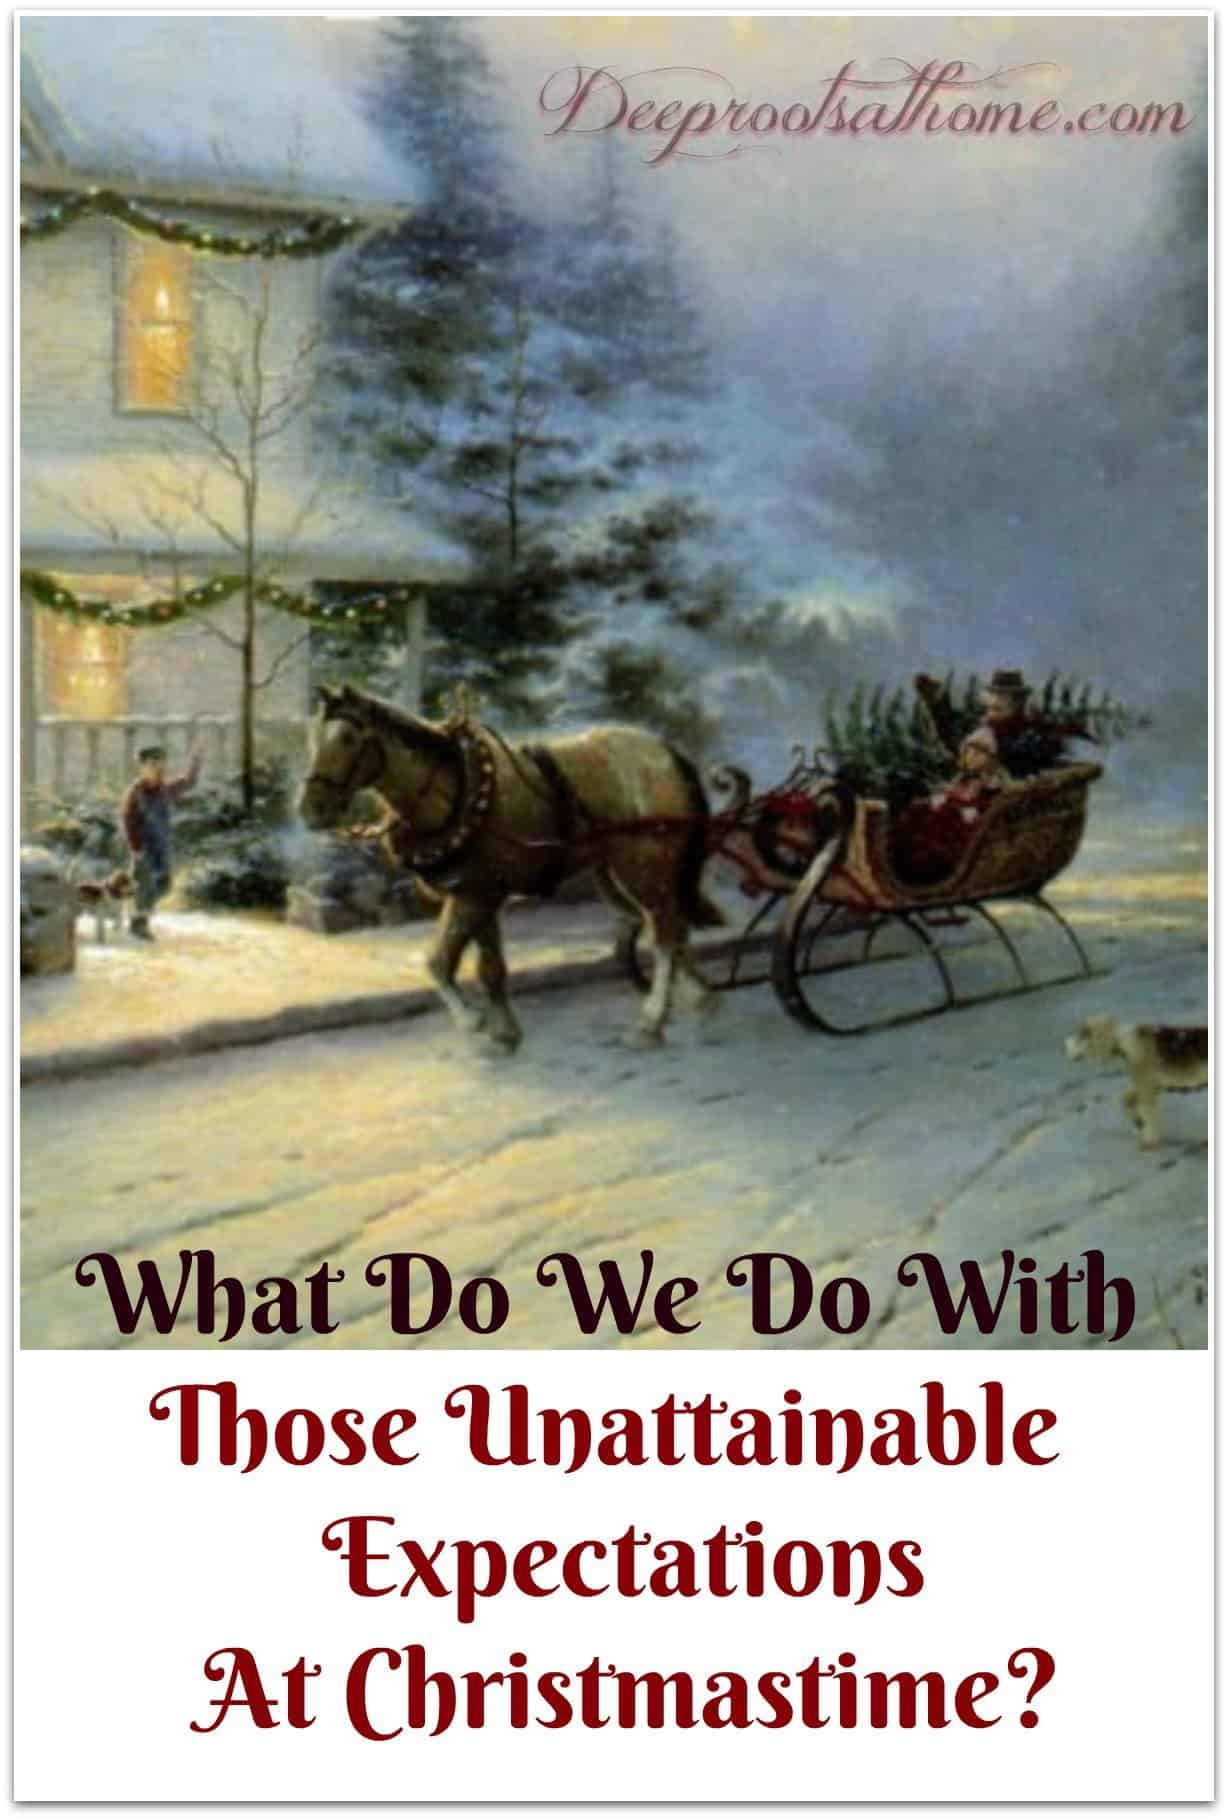 What Do We Do With Those Unattainable Expectations At Christmastime? sleigh ride